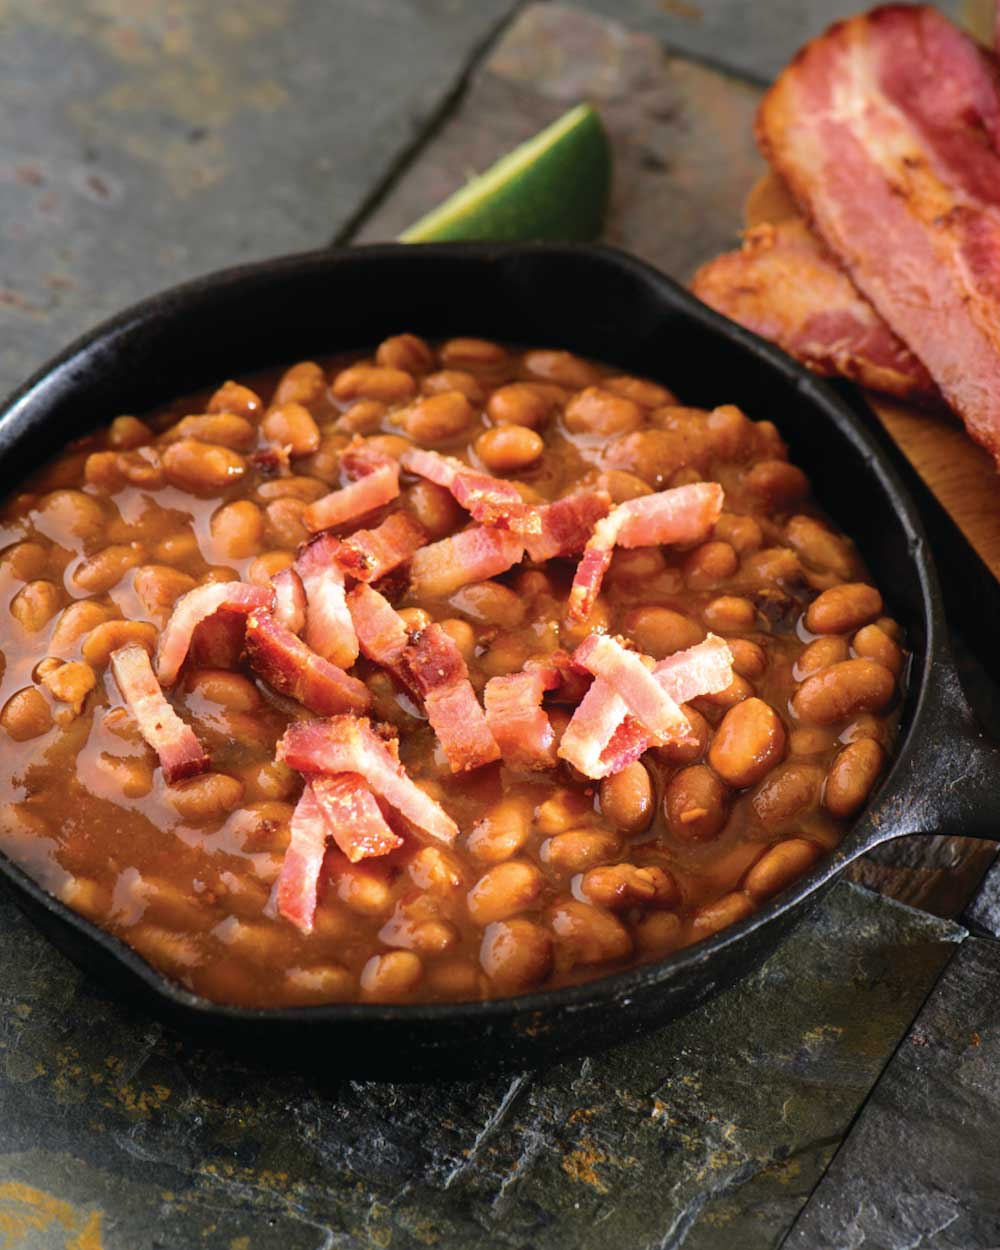 Bacon, Onion and Brown Sugar Baked Beans